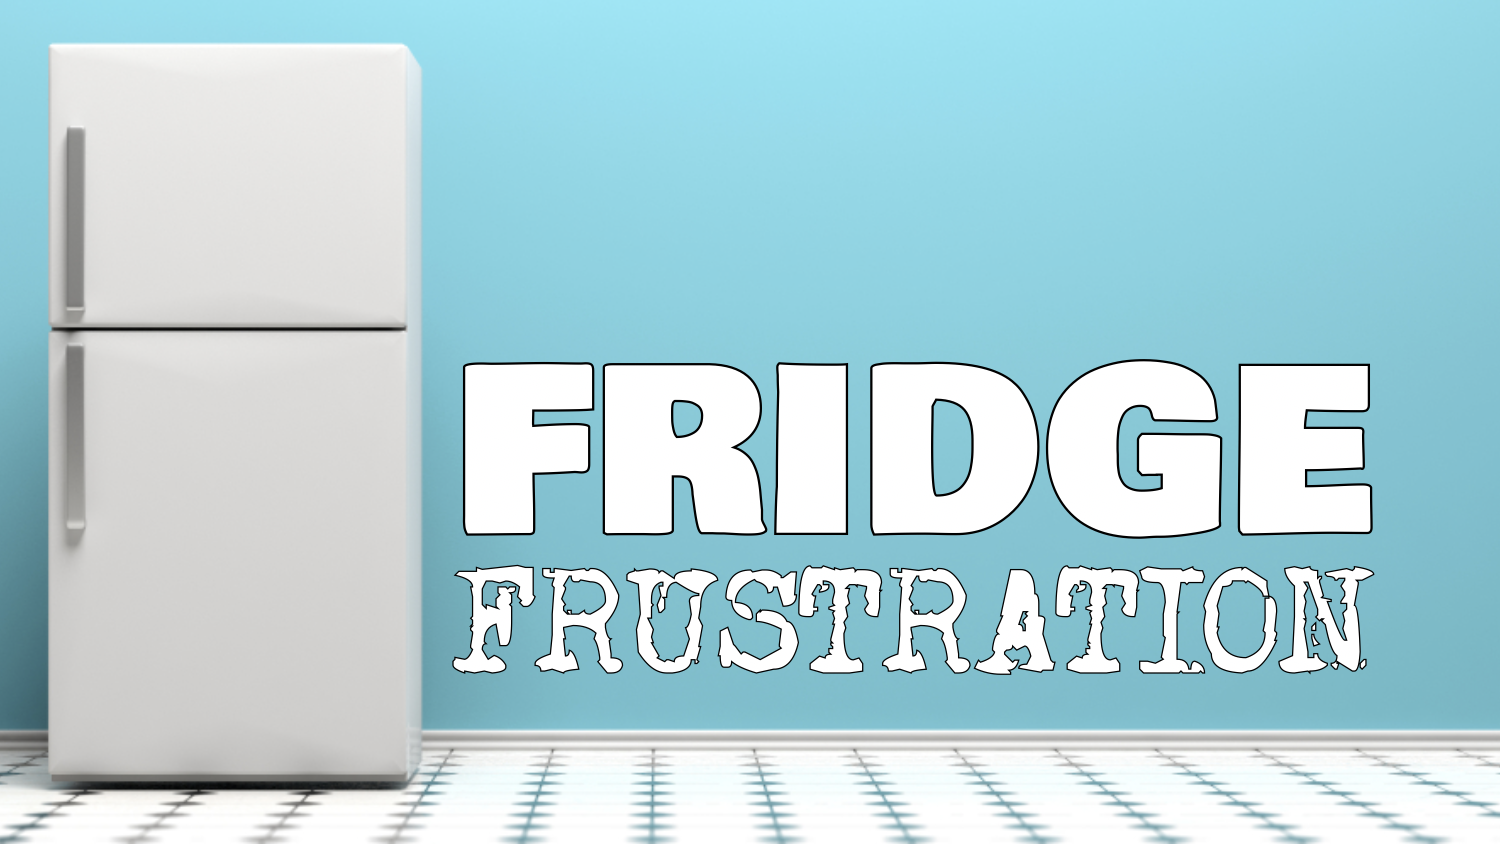 In   FRIDGE FRUSTRATION  , three players will face the ultimate challenge of sharing a messy office refrigerator. They must work together in order to tackle the bane of any work environment - a shared fridge.